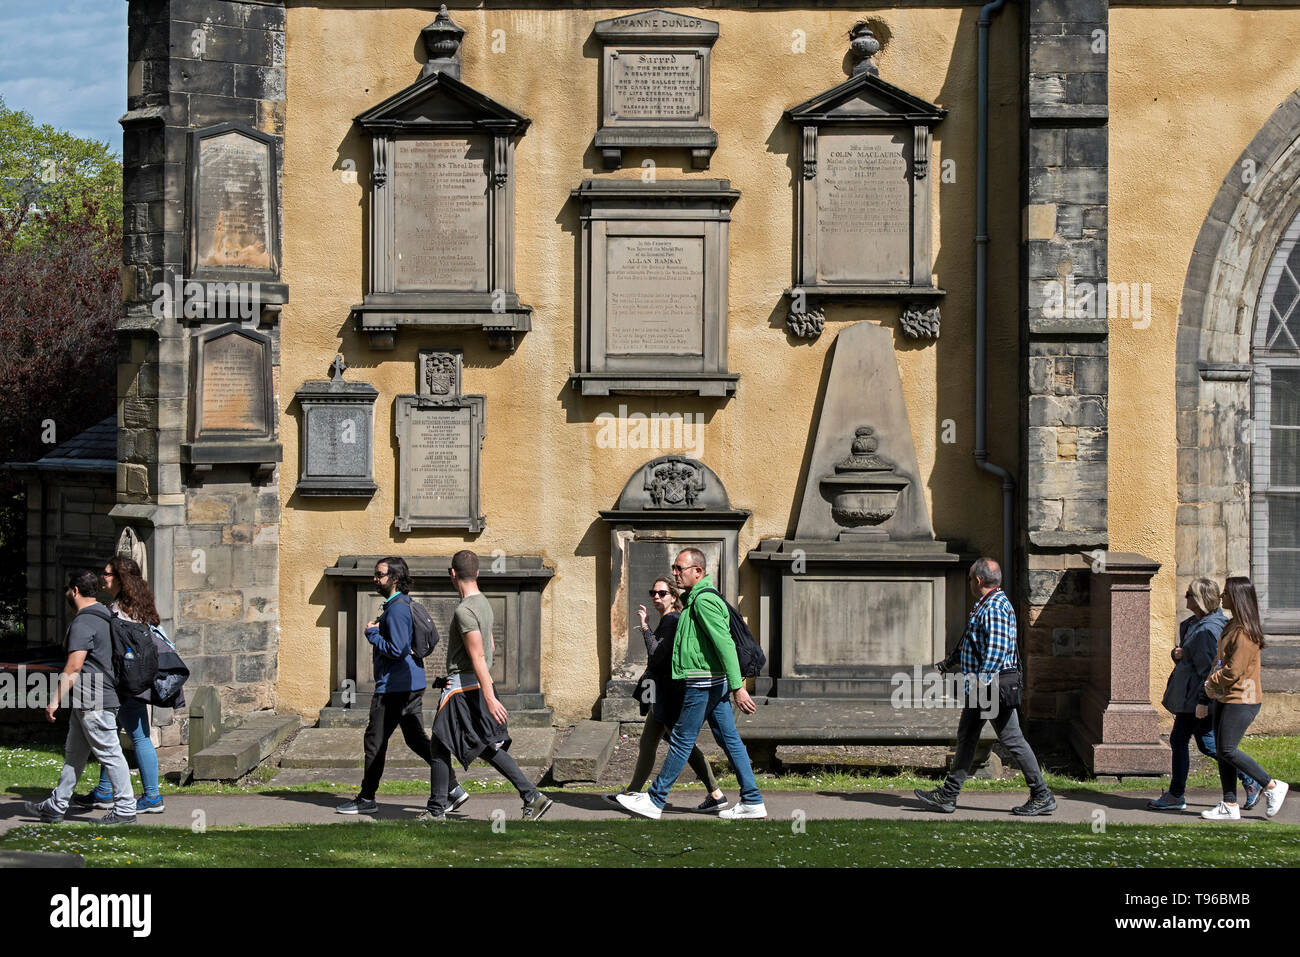 Trourists on a walking tour stroll by memorials on the wall of Greyfriars Kirk in Edinburgh, Scotland, UK. - Stock Image